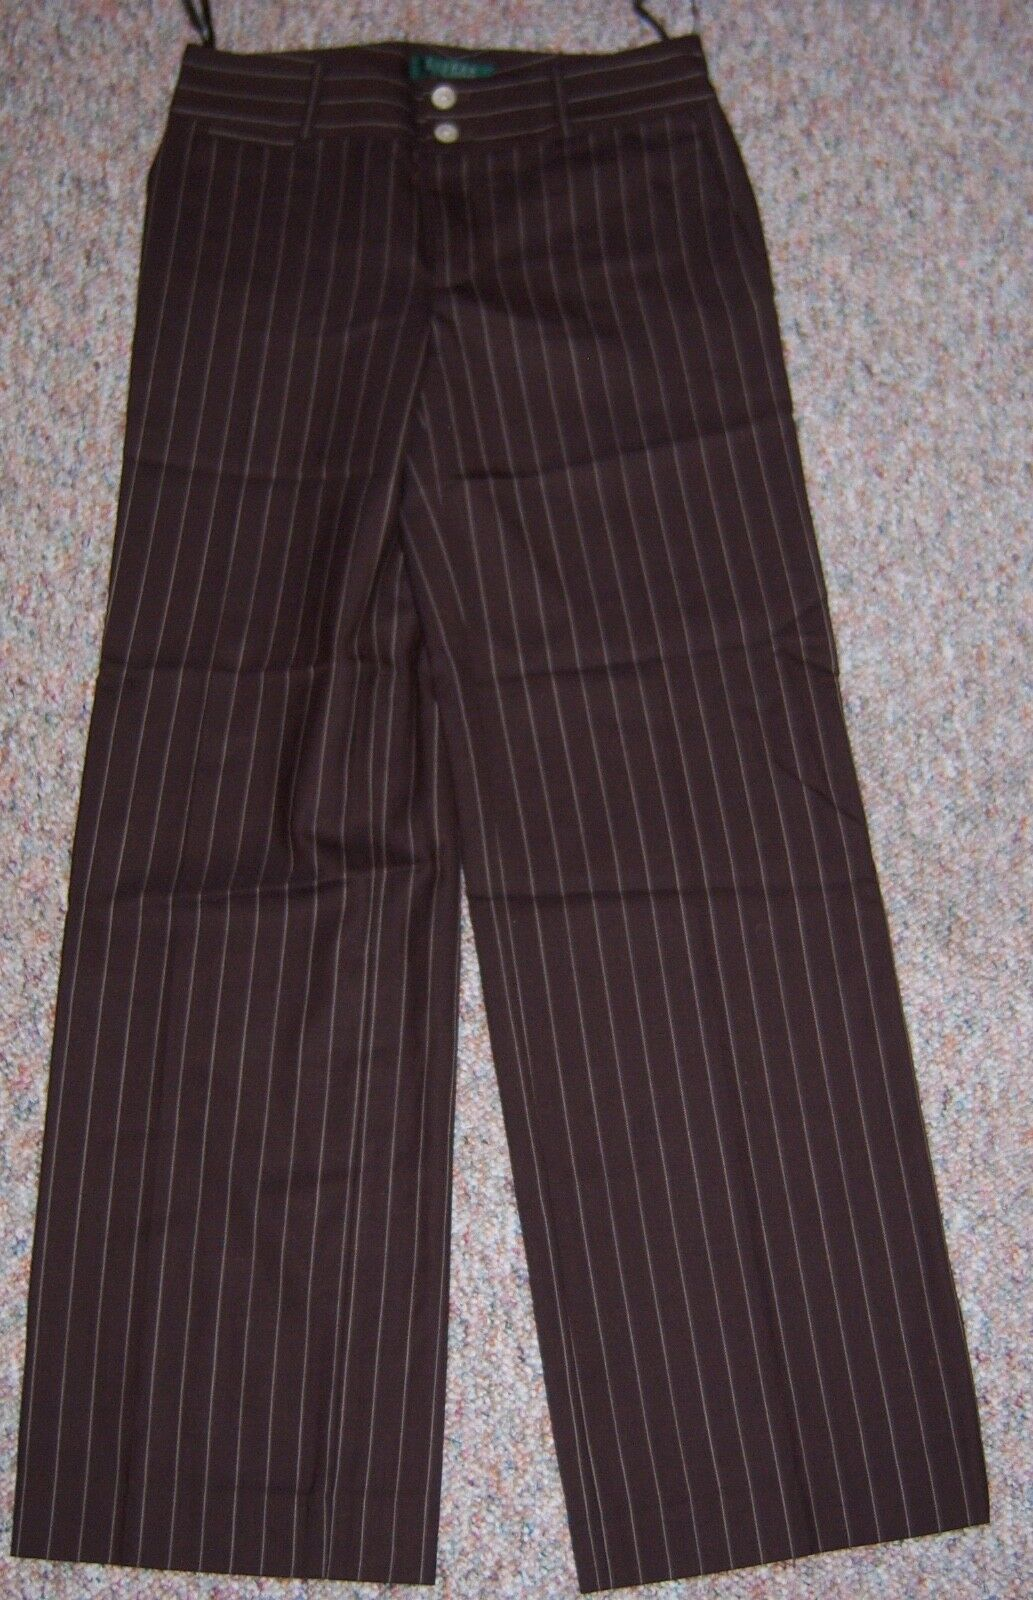 RALPH LAUREN Brown Striped Andover Modern Wide Leg Wool Pants 2P or 2 Petite NWT